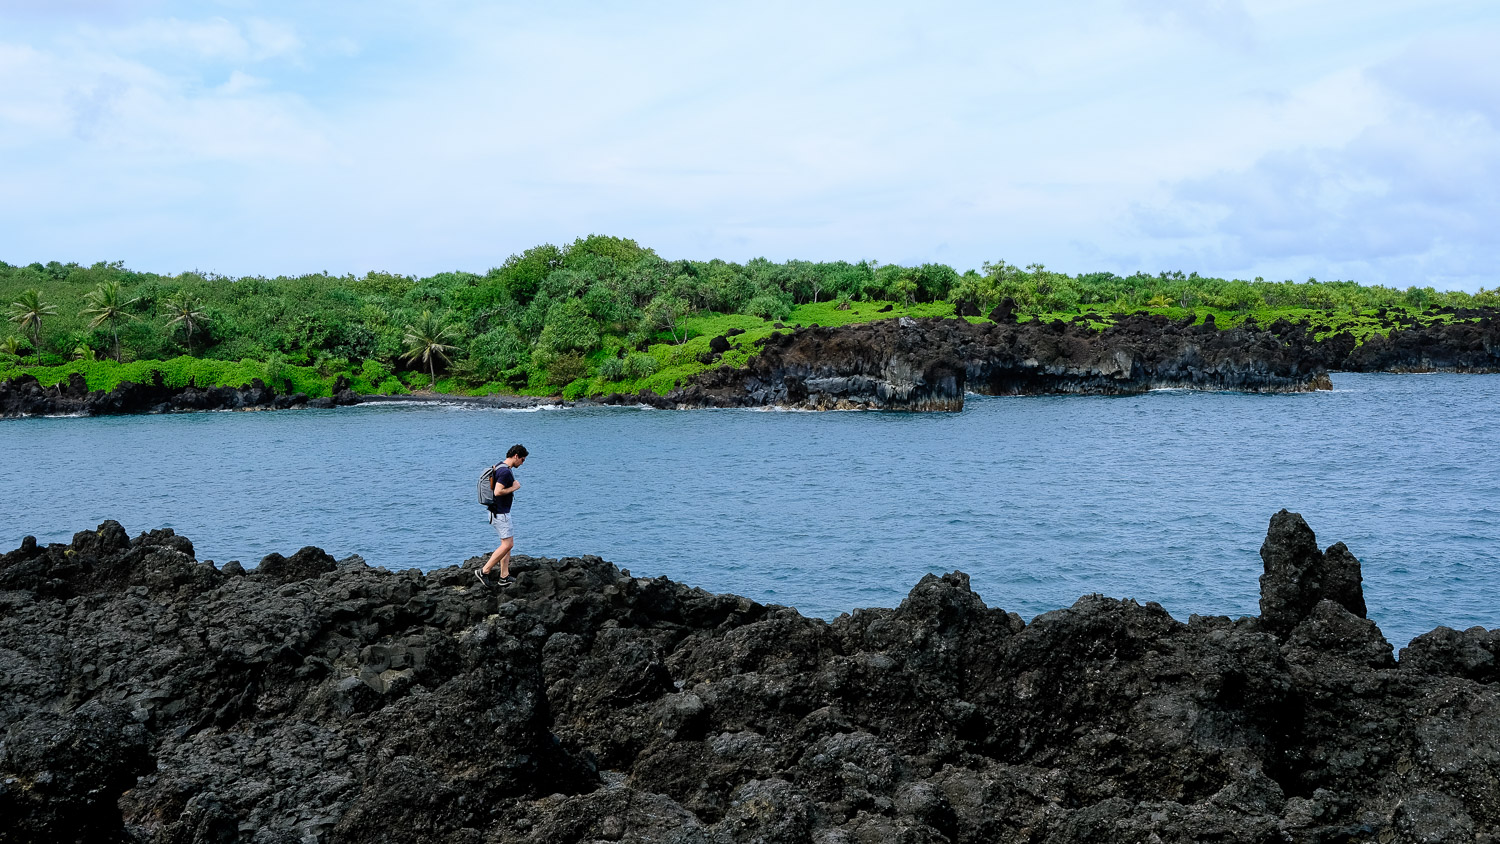 Walking on the lava rocks